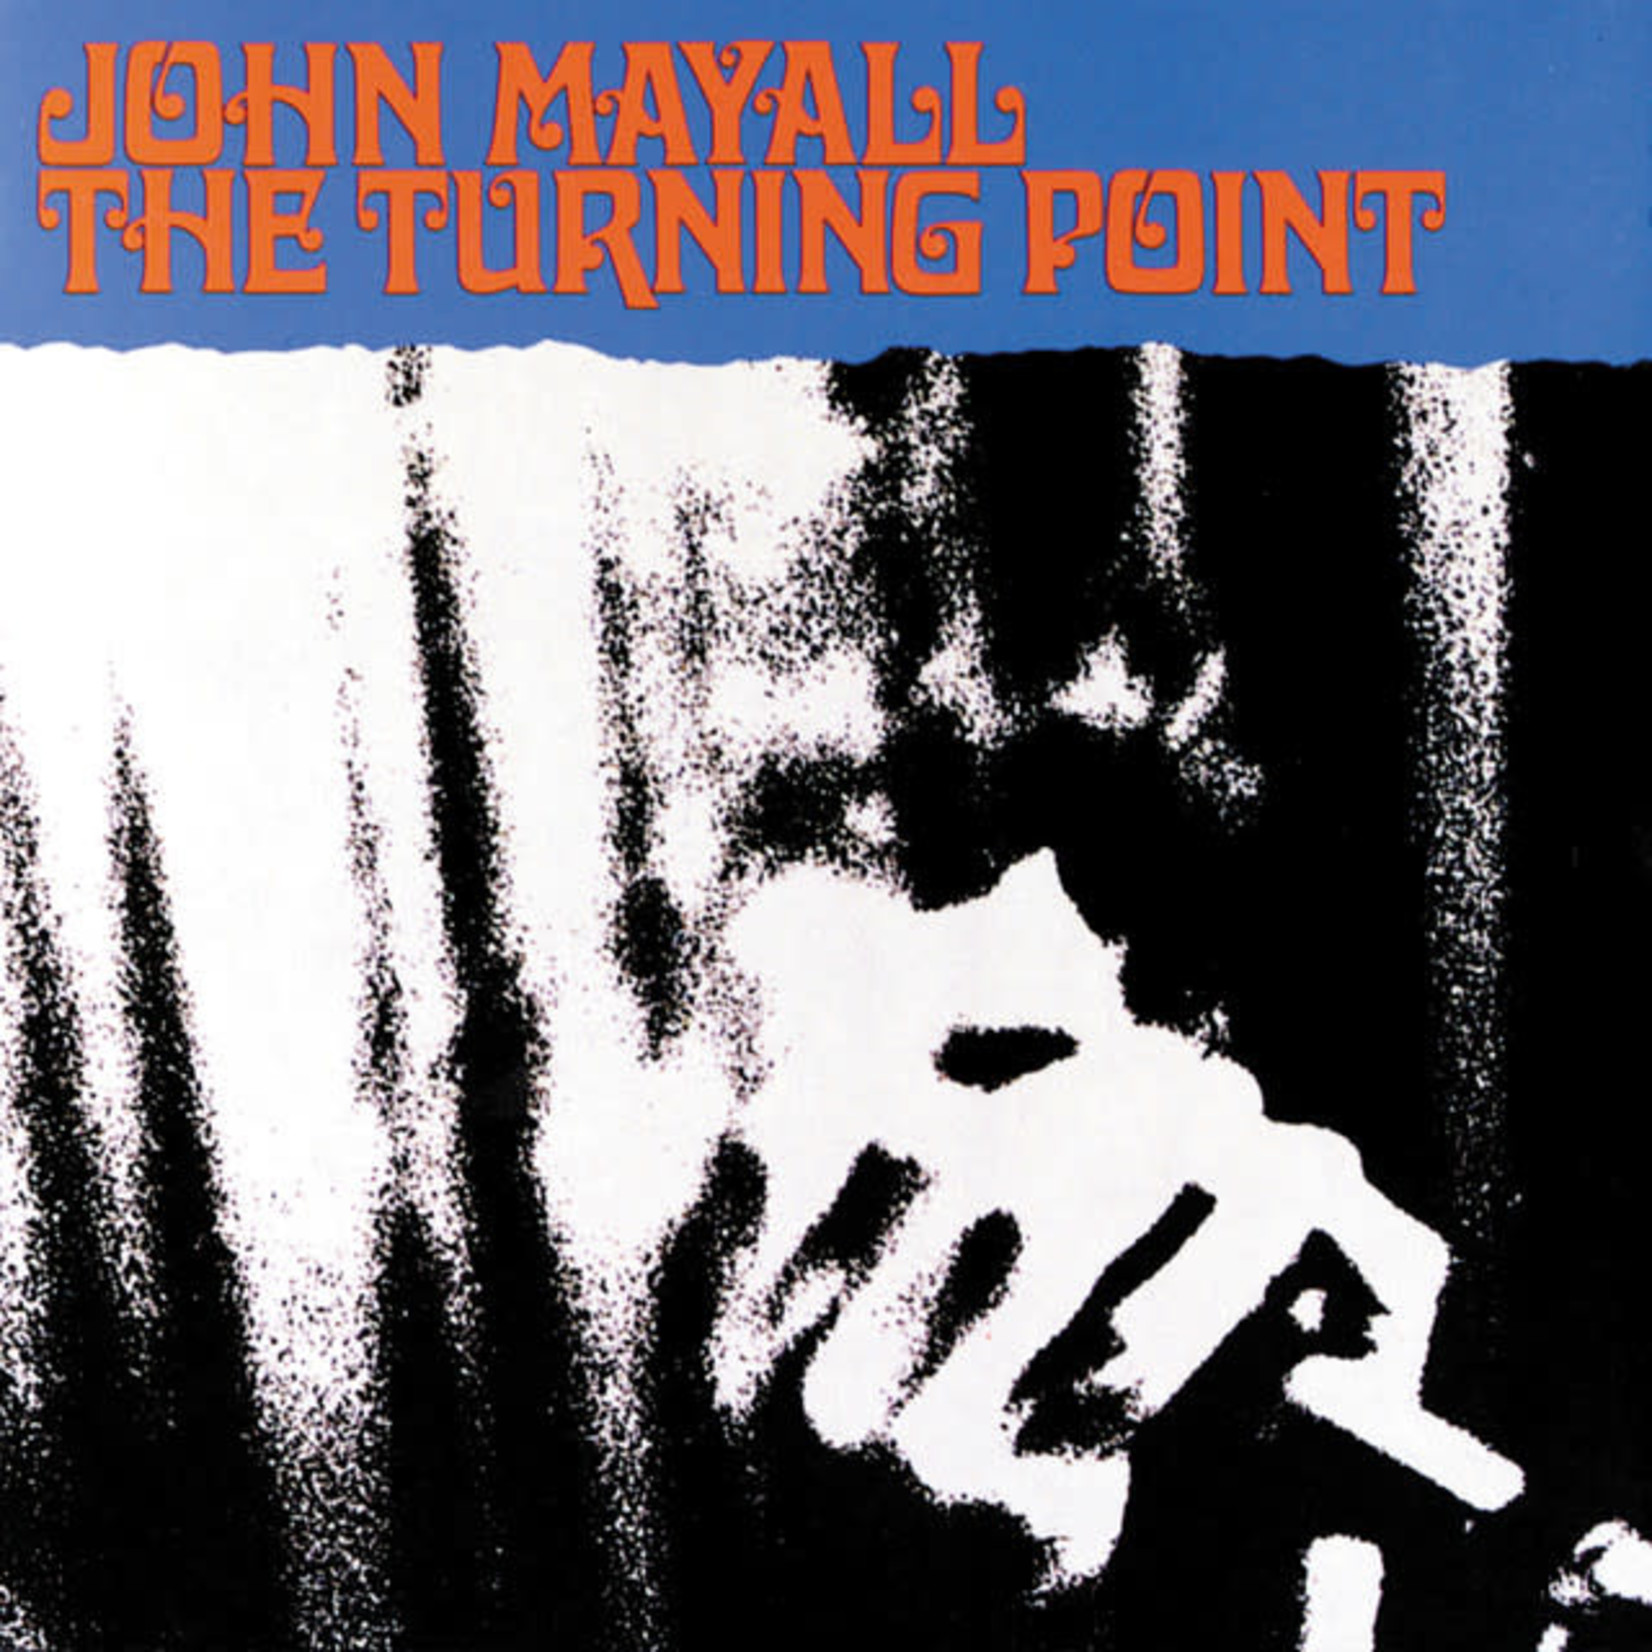 Vinyl John Mayall - The Turning Point (Deluxe Edition)